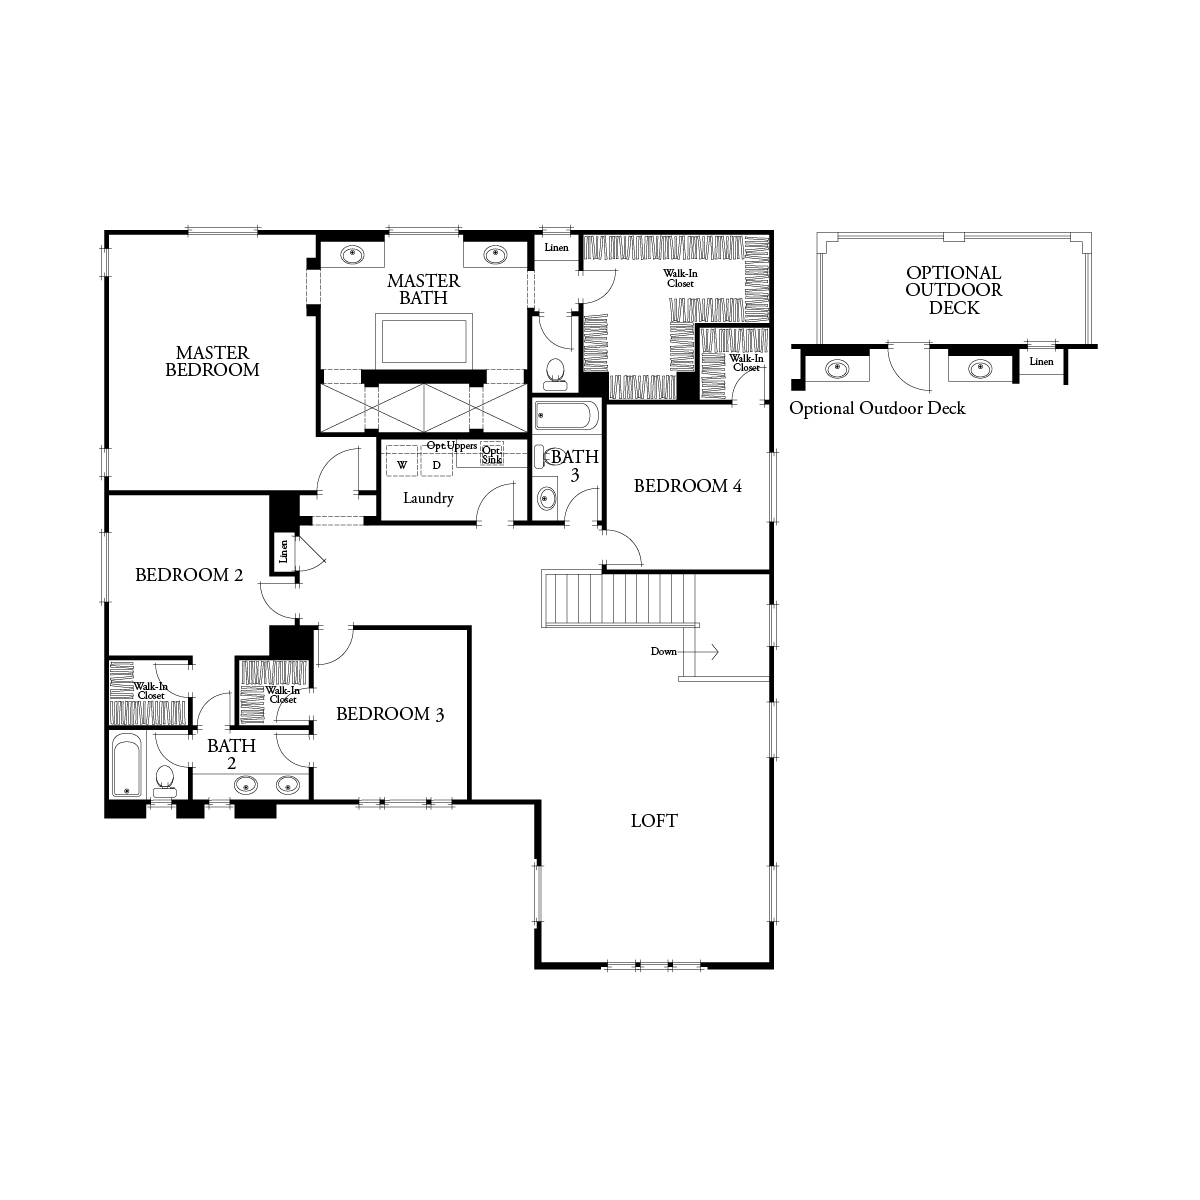 Second floor residence 3 floor plan | Mataro at Glen Loma Ranch in Gilroy, CA | Brookfield Residential